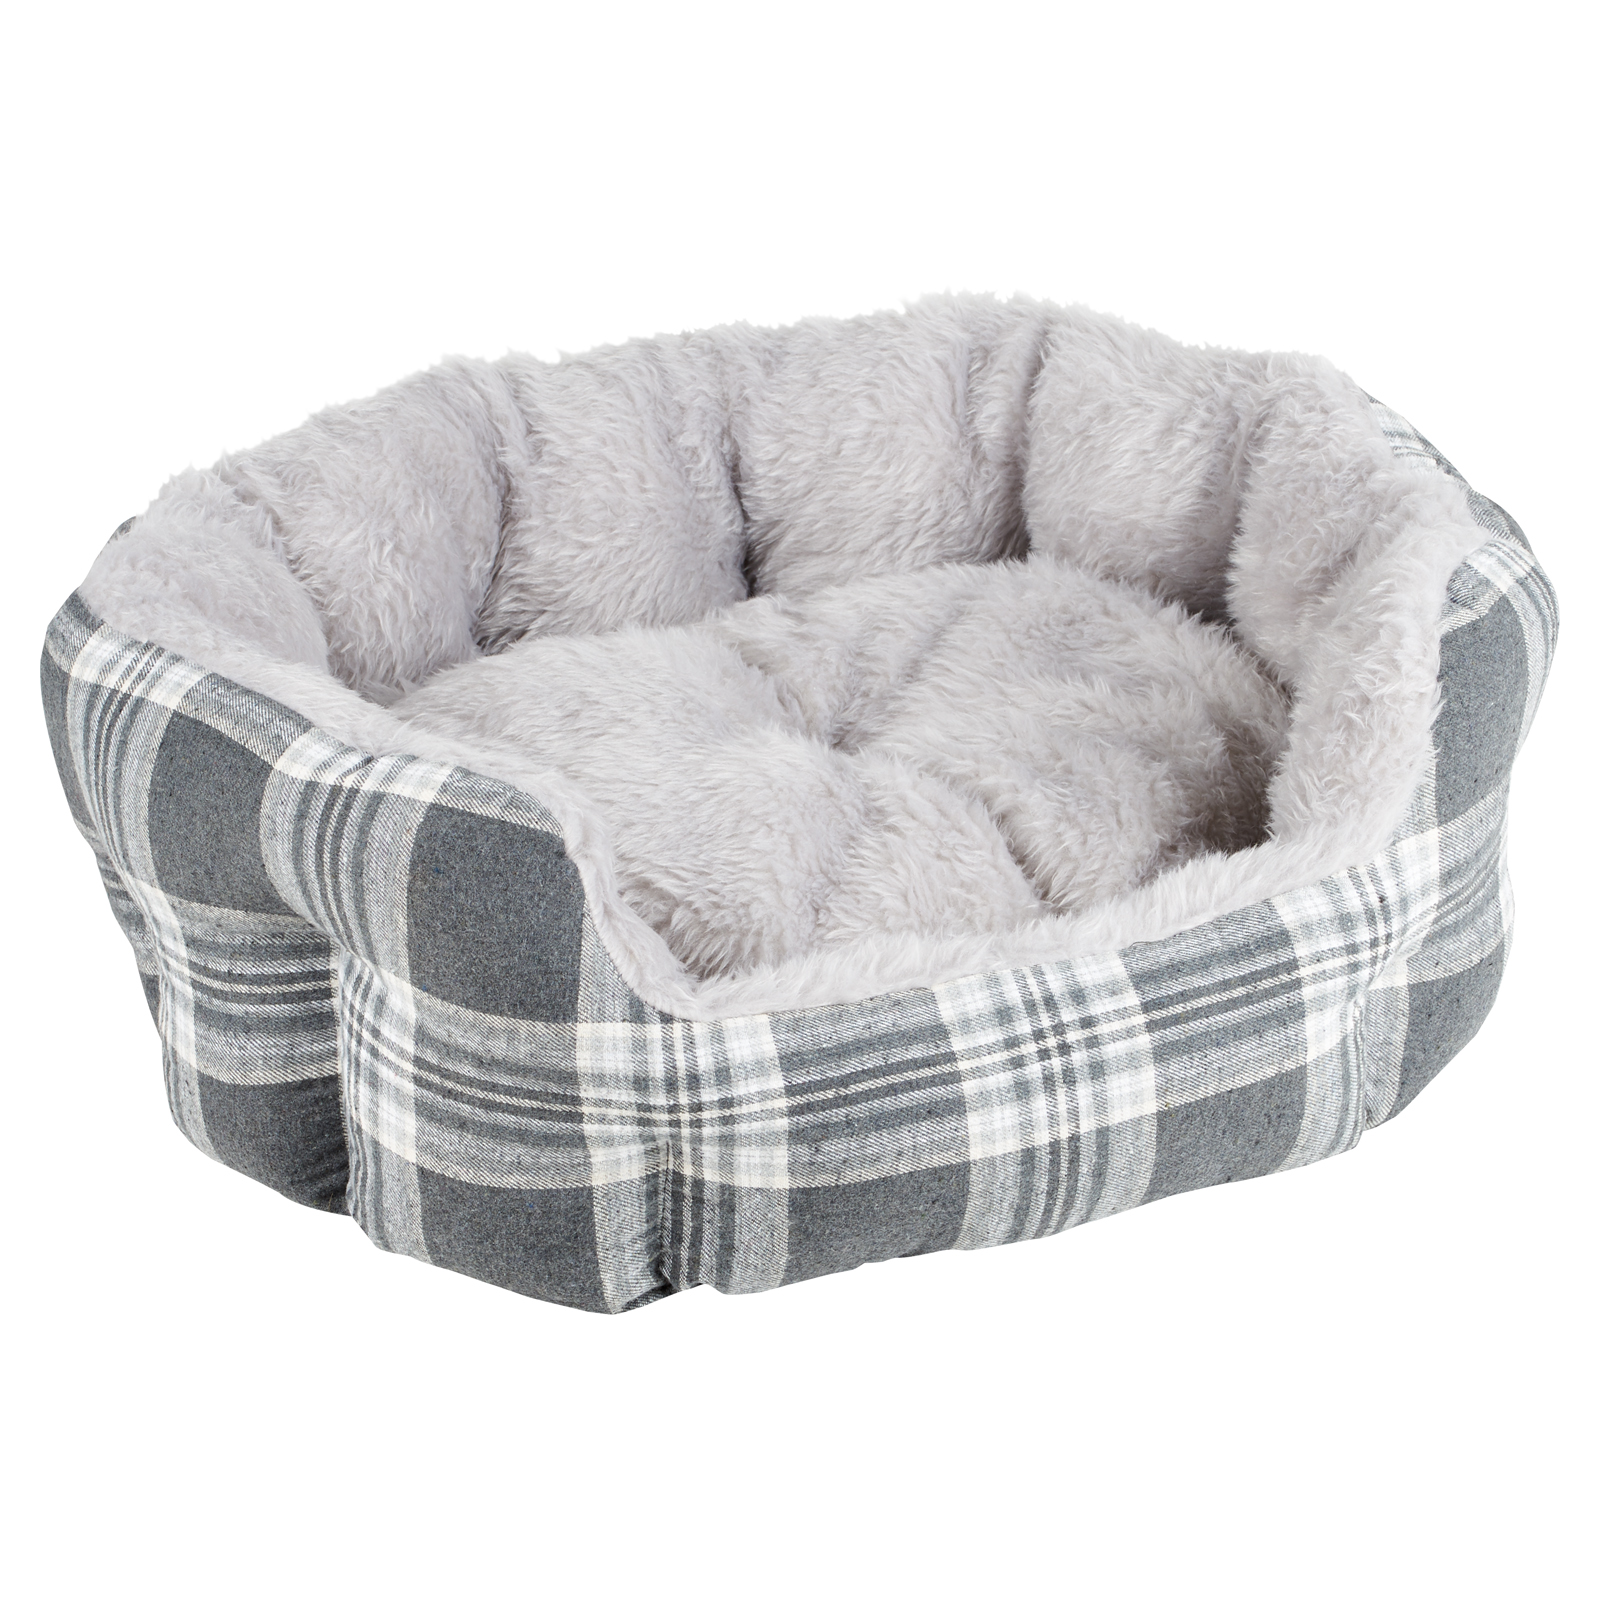 ME & MY GREY CHECK EXTRA THICK/SOFT PET BED DOG/PUPPY